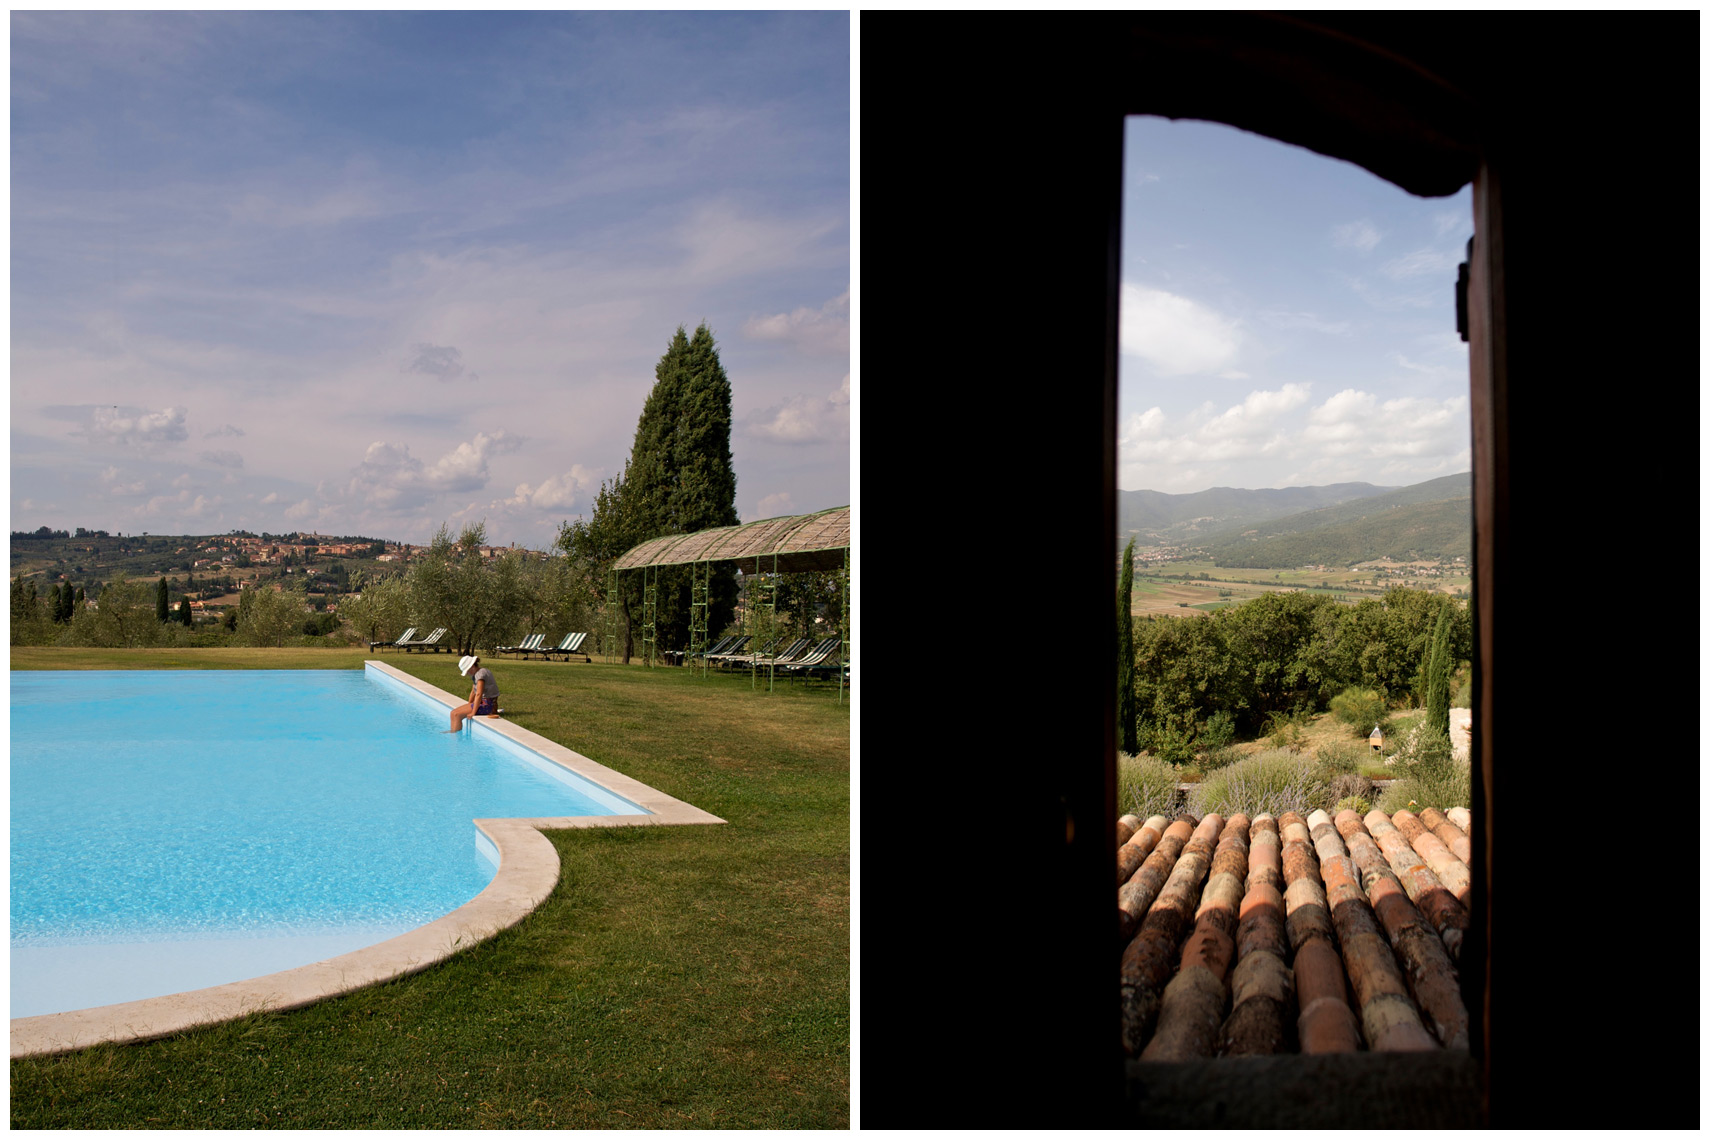 The Pool at the Hotel Locanda Dell Amorosa Sinalunga and a window looking onto the village of Mercatale